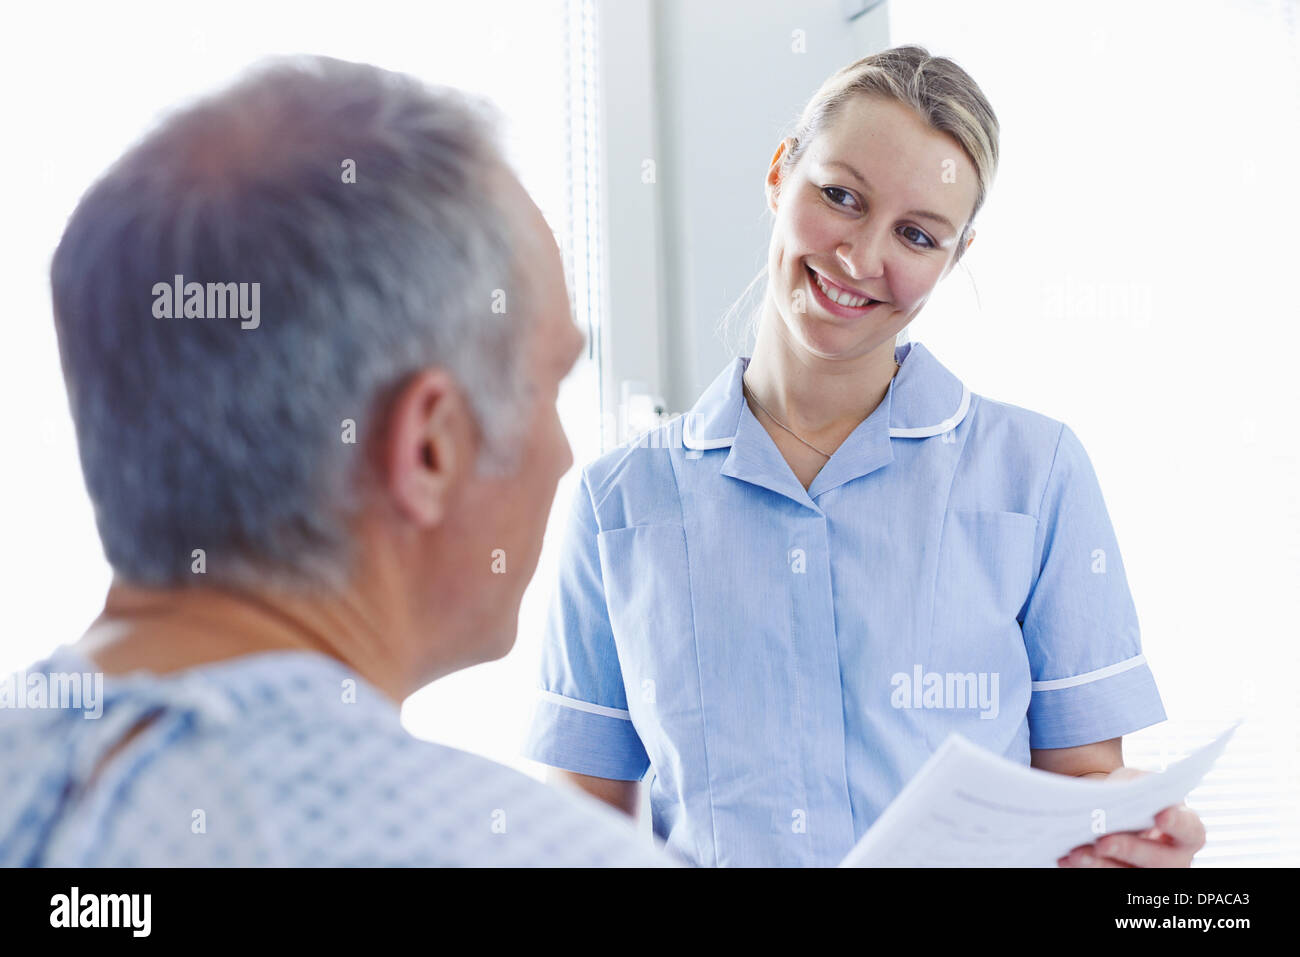 Nurse having conversation with patient - Stock Image